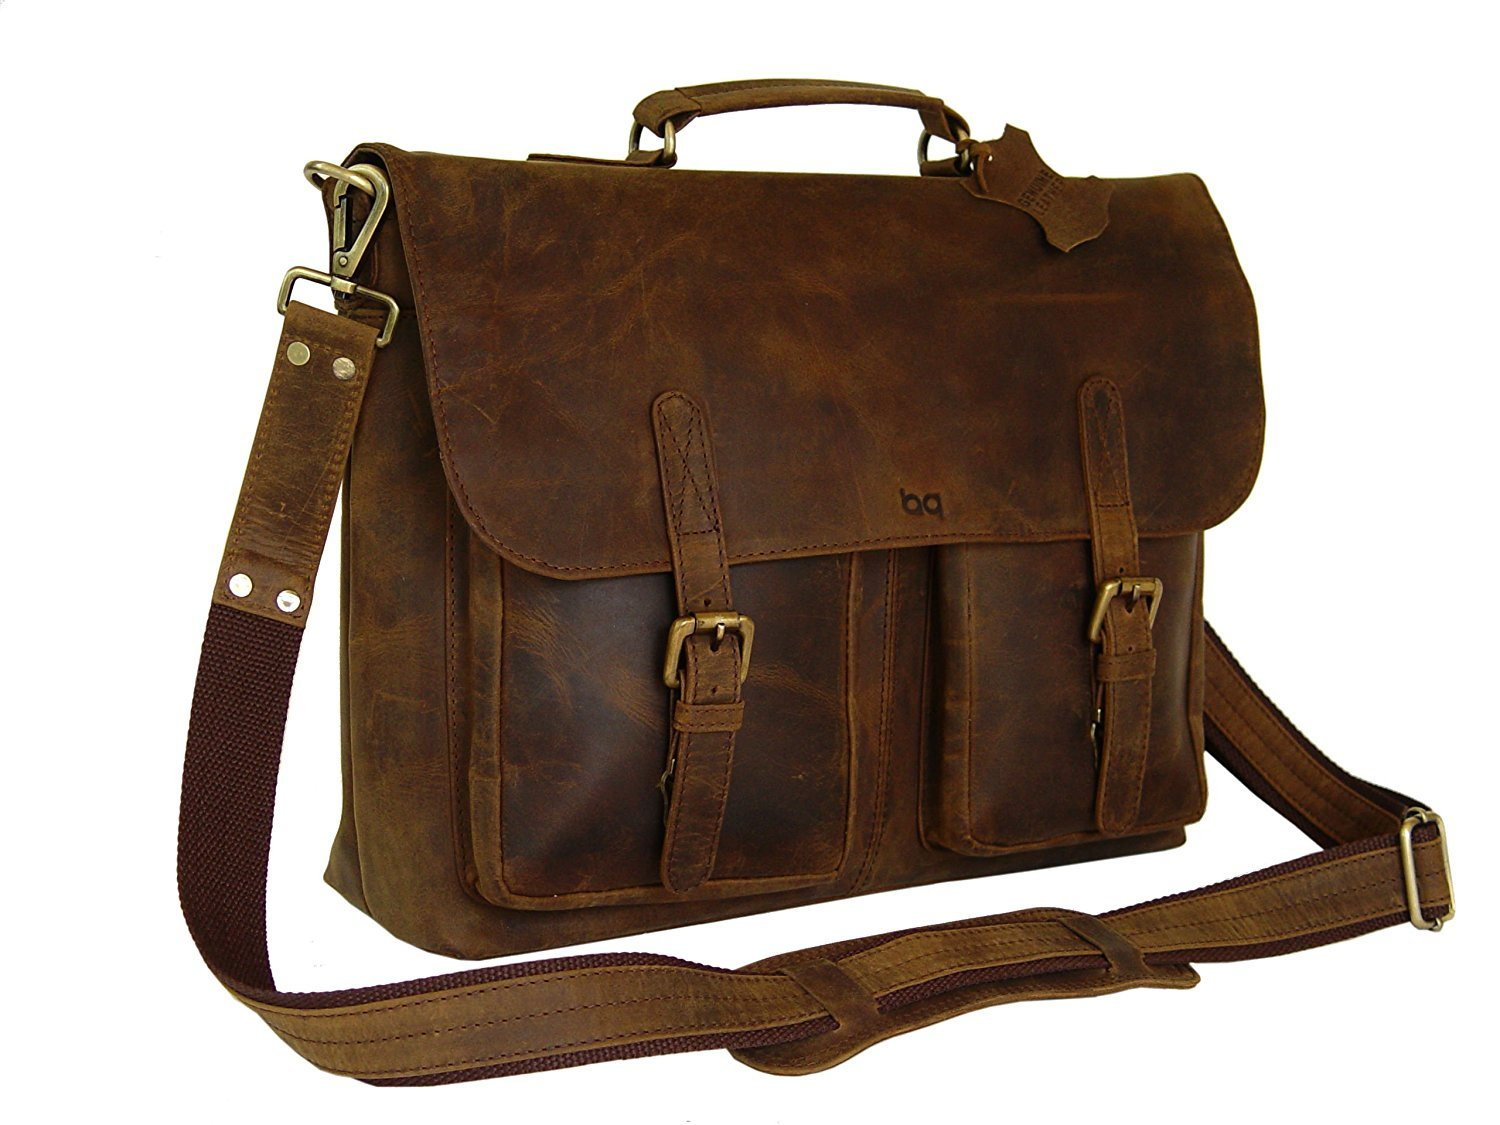 a7e5afc8b7c outlet 18 Inch Retro Buffalo Hunter Leather Laptop Messenger Bag Office  Briefcase College Bag By RK